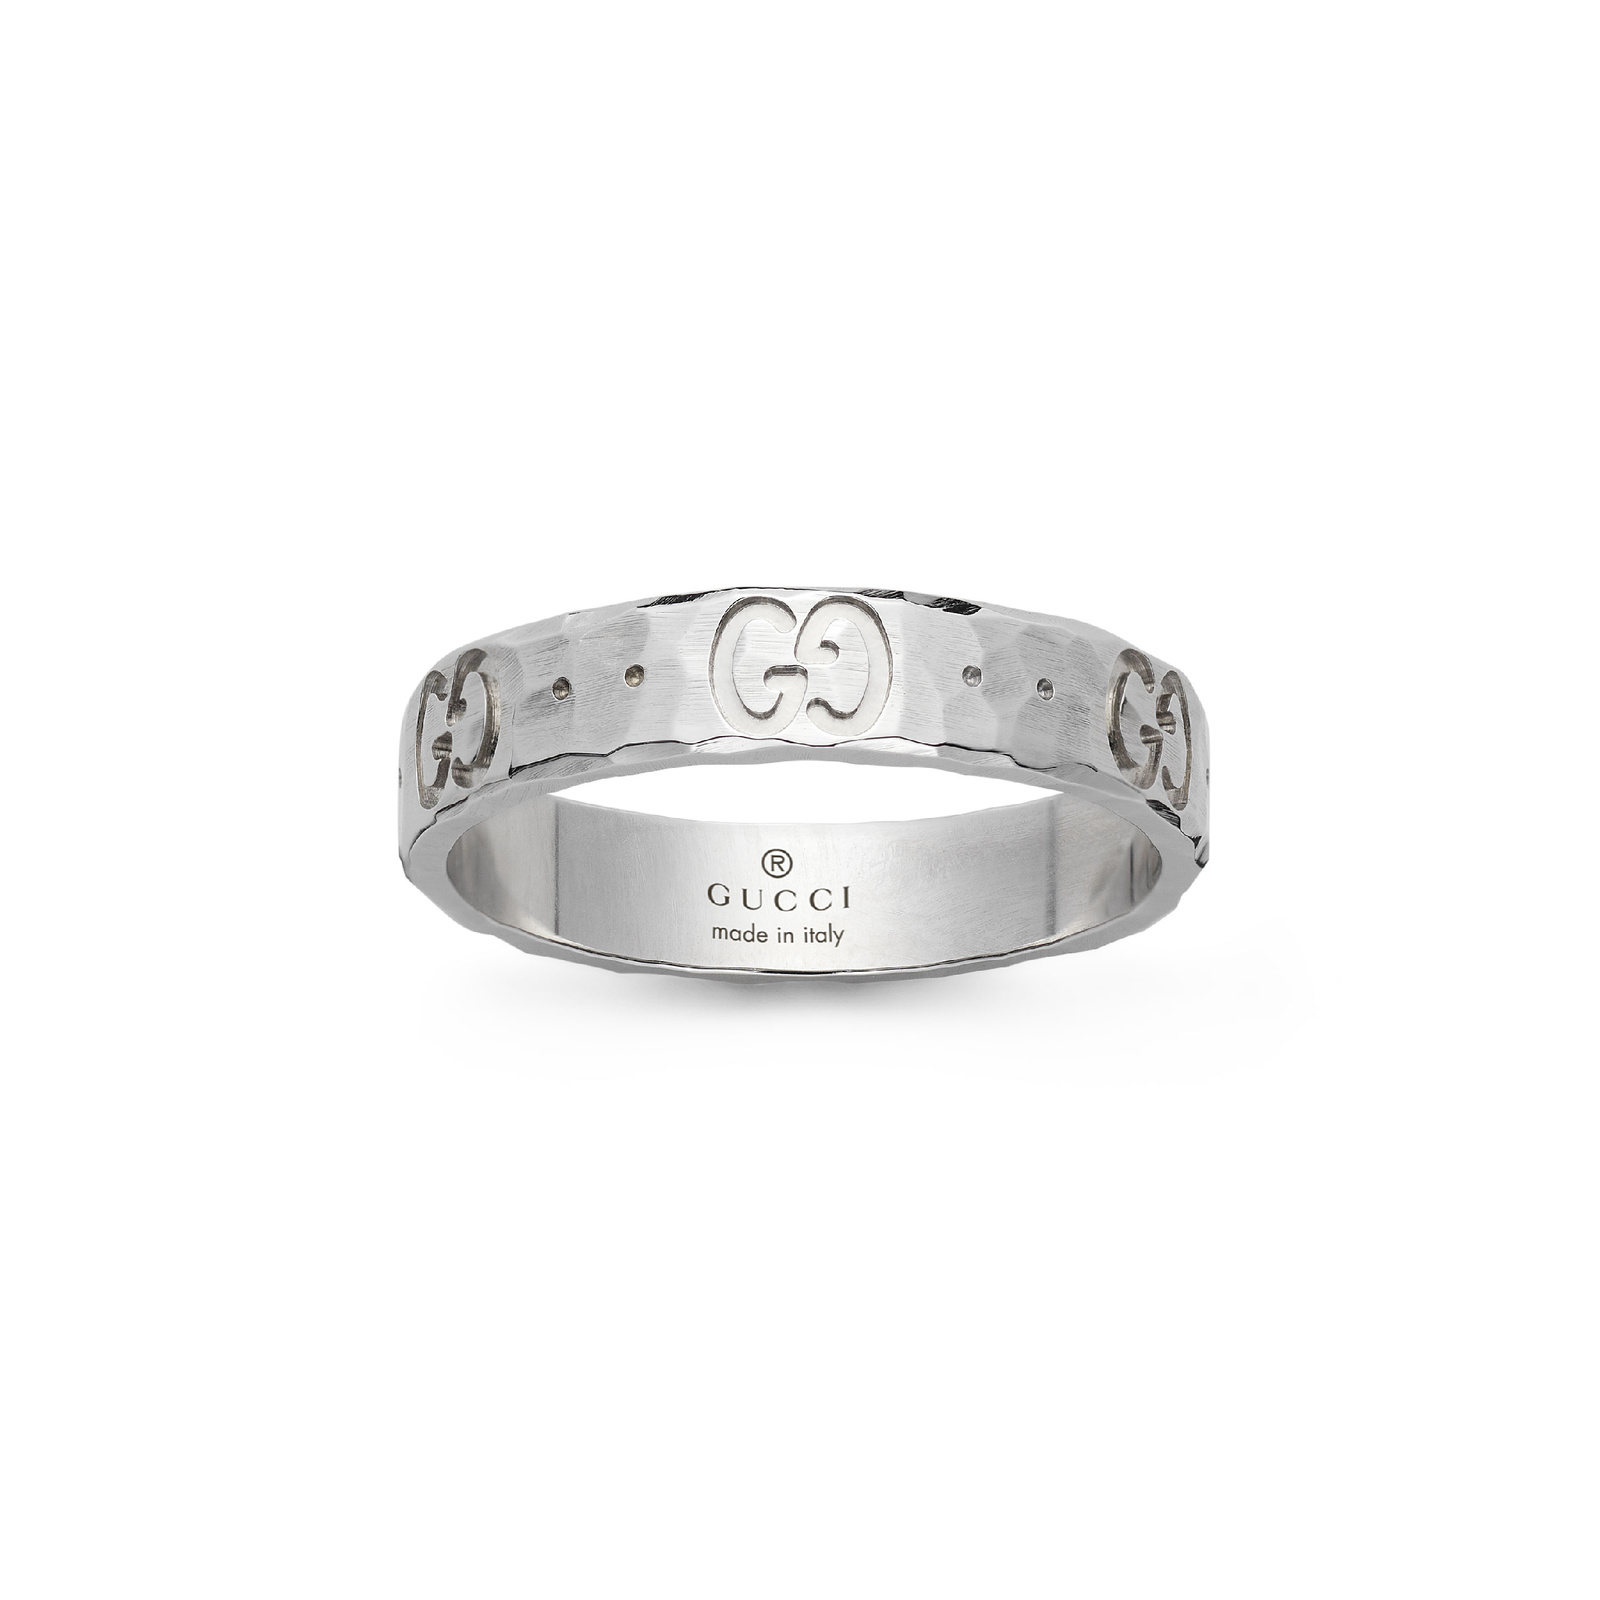 Gucci Icon Hammered 18ct White Gold 4mm Ring - Ring Size L